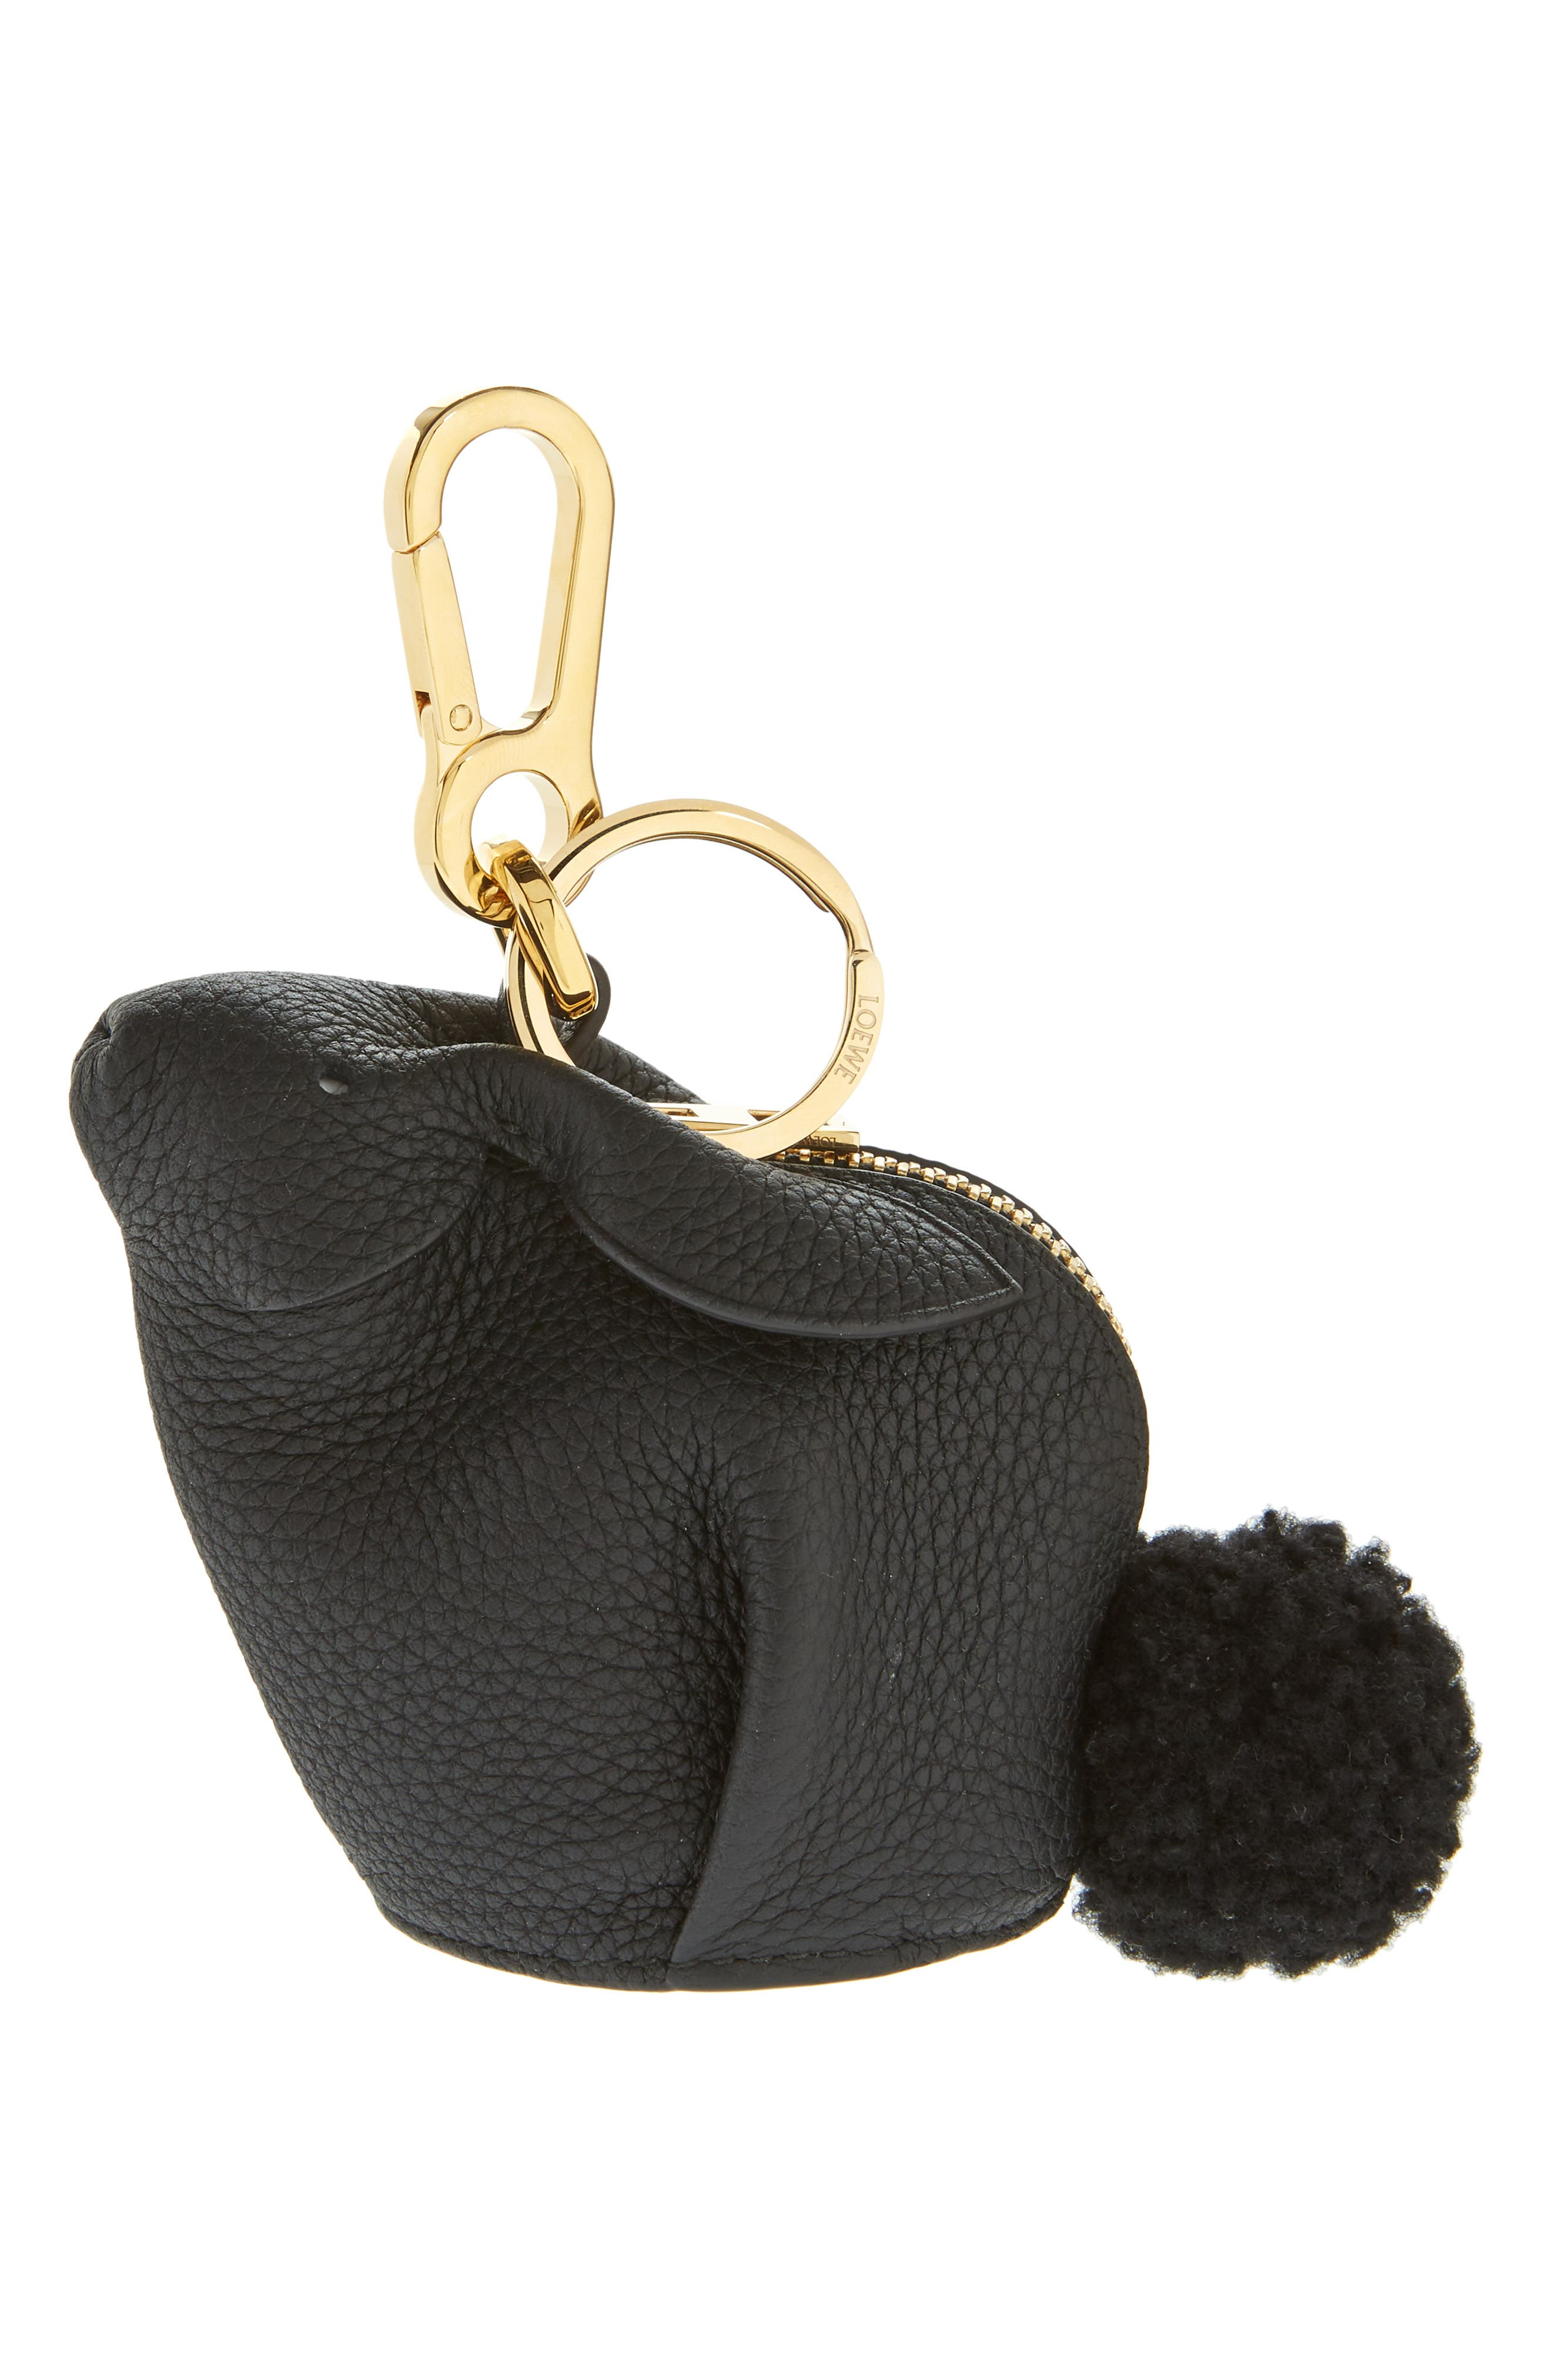 Bunny Bag Charm with Genuine Shearling,                             Main thumbnail 1, color,                             001